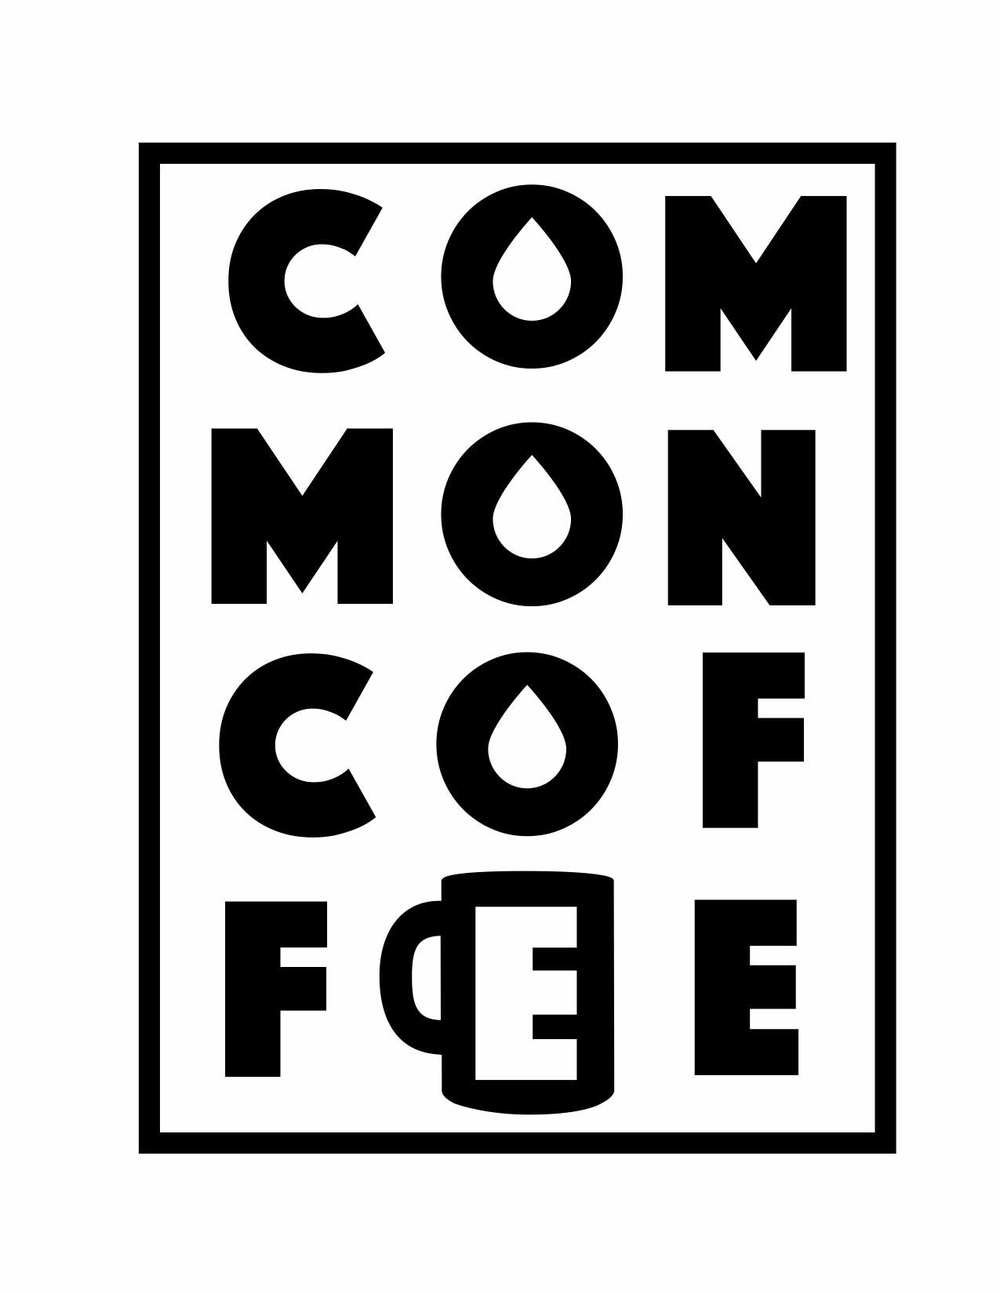 A logo to be used as a stamp for coffee bags that are distributed through our church's food co-op, The Common Cupboard.